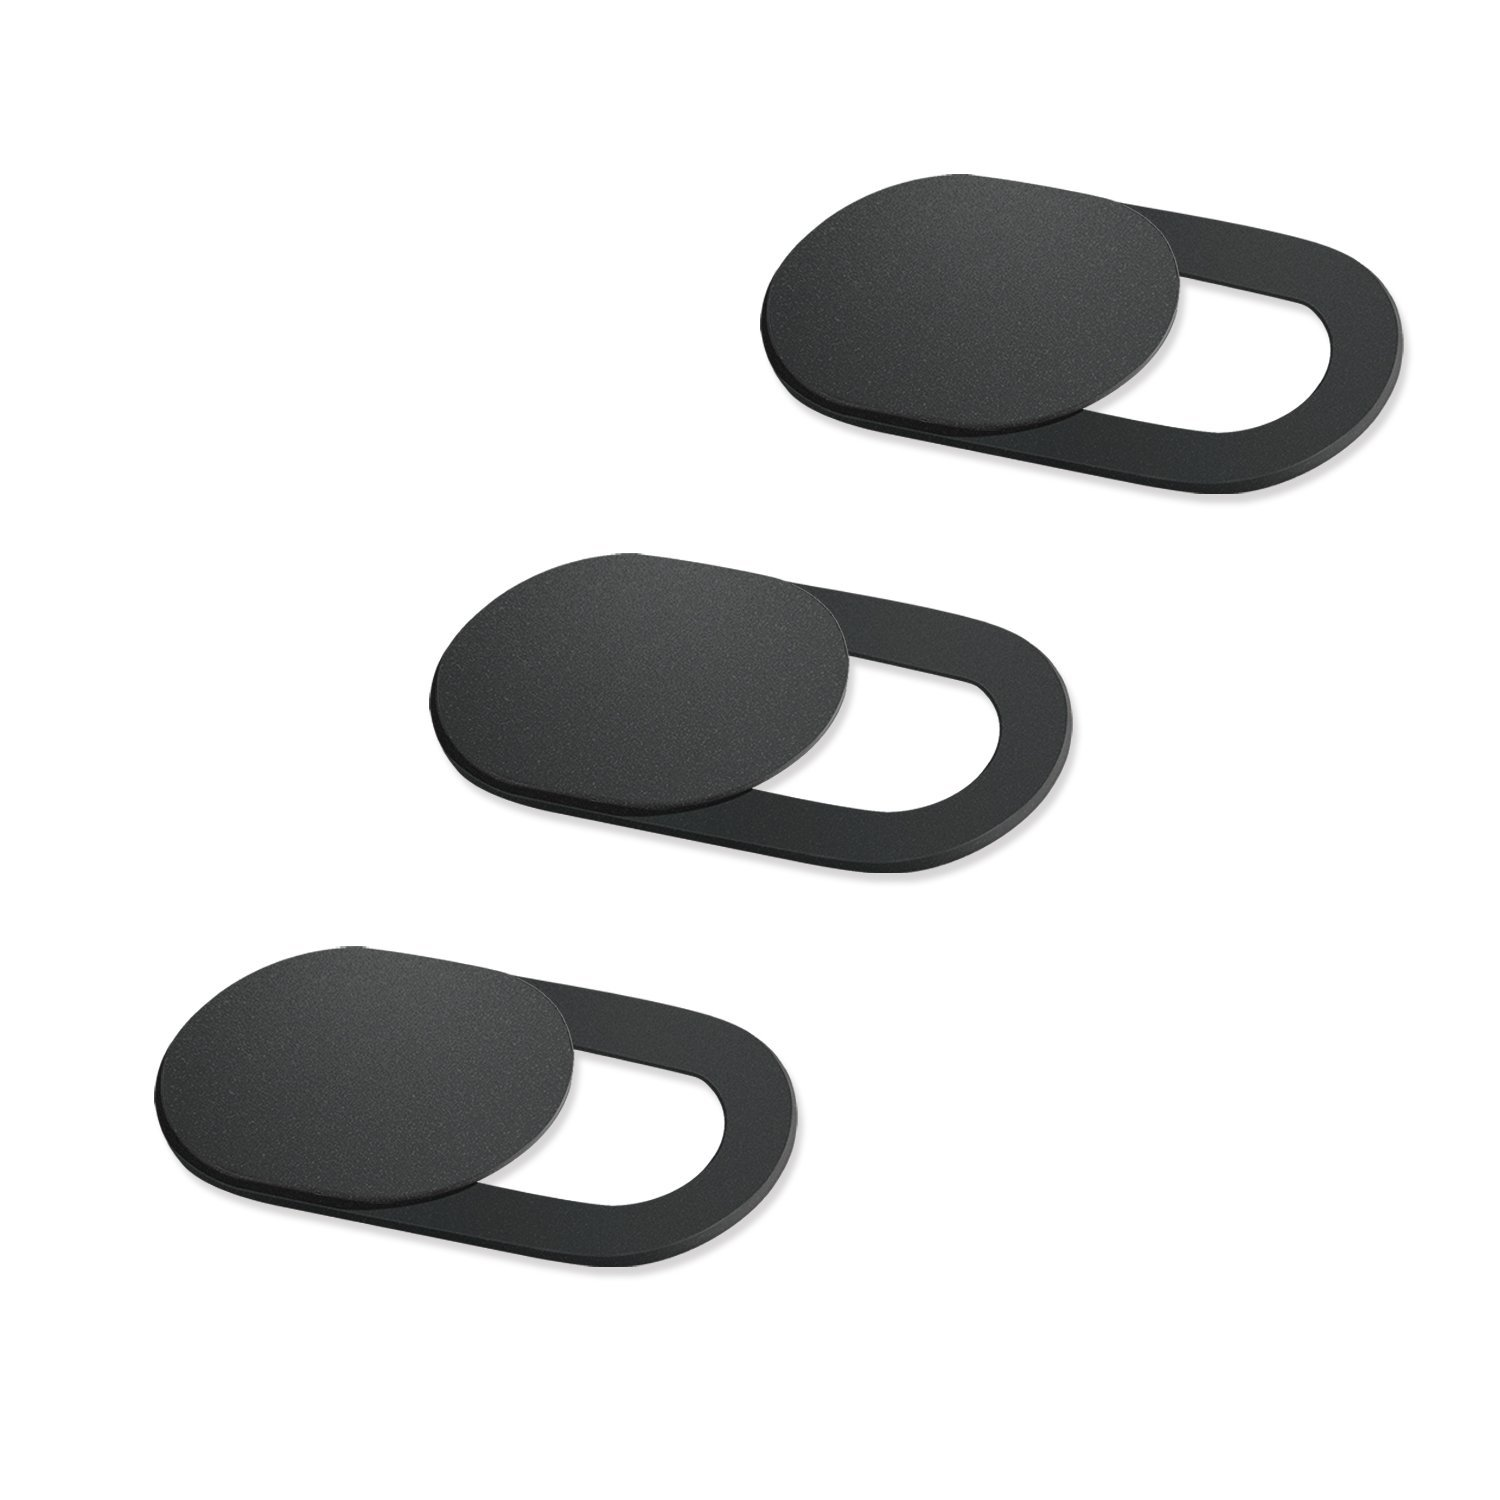 3 Pack Webcam Cover Ultra-Thin Slide Privacy Protector Camera Cover For Laptop Phone , Protect Your Privacy And Security, Stro